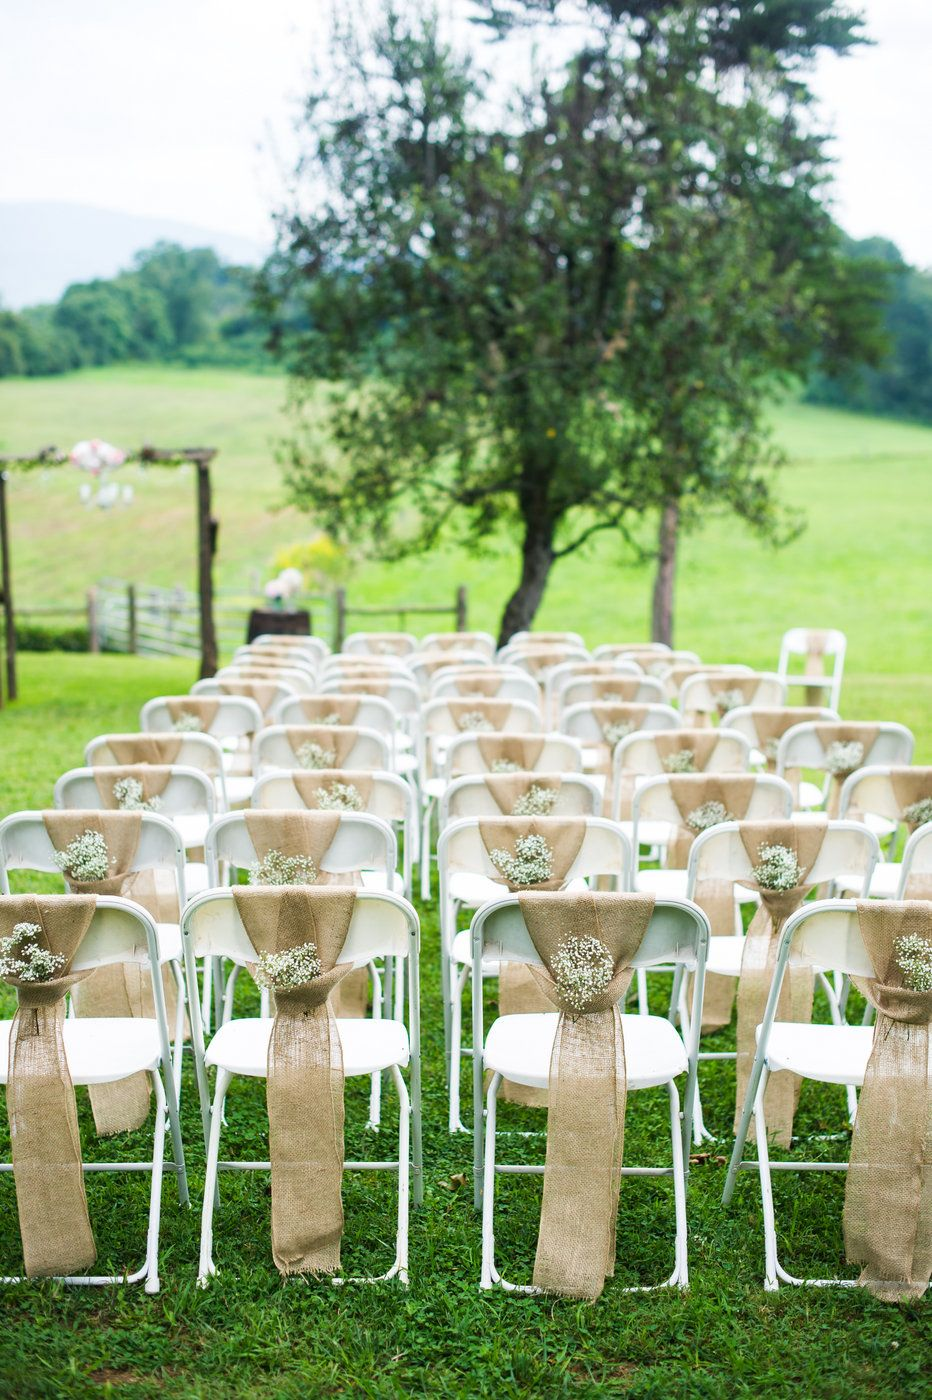 anna chair cover & wedding linens rental burnaby bc stool light pin by brenda roberts on febie s pinterest chelsayoderphotography pass us decor cheap covers outdoor